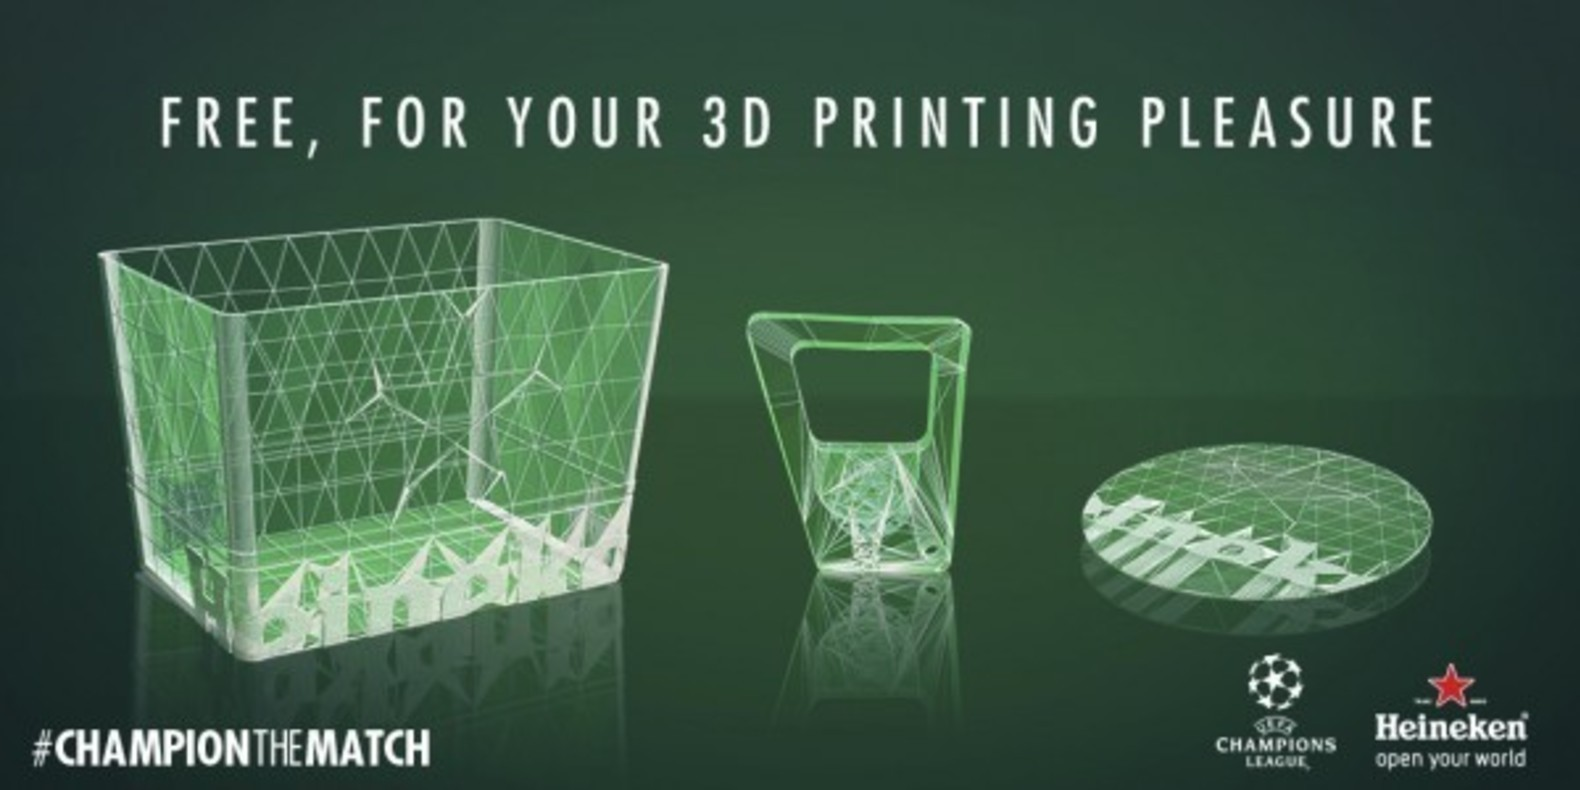 Heineken offers a 3D printed support kit to enjoy the Champions League